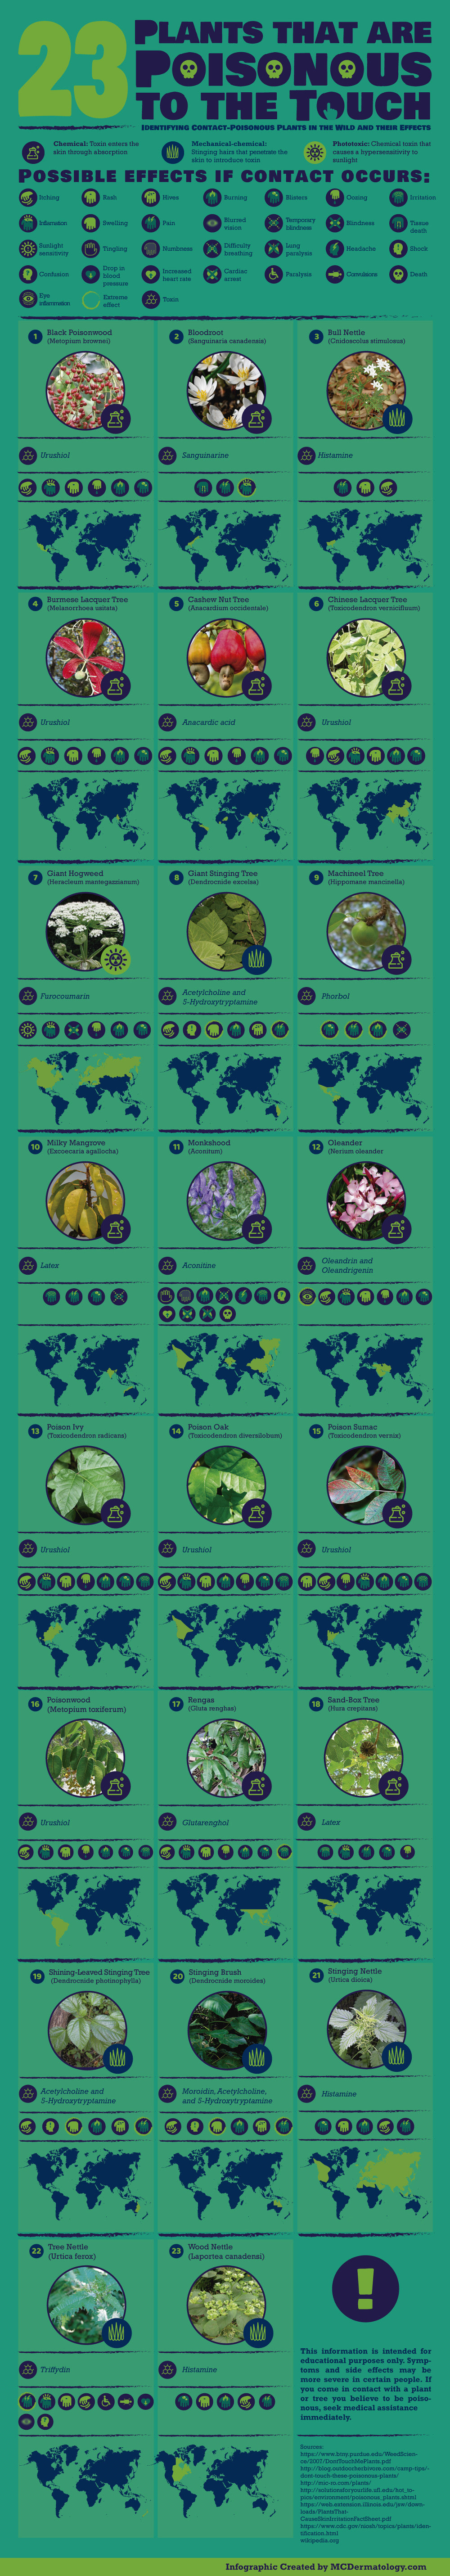 How to Identify and Stay Safe from Contact-Poisonous Plants - Infographic